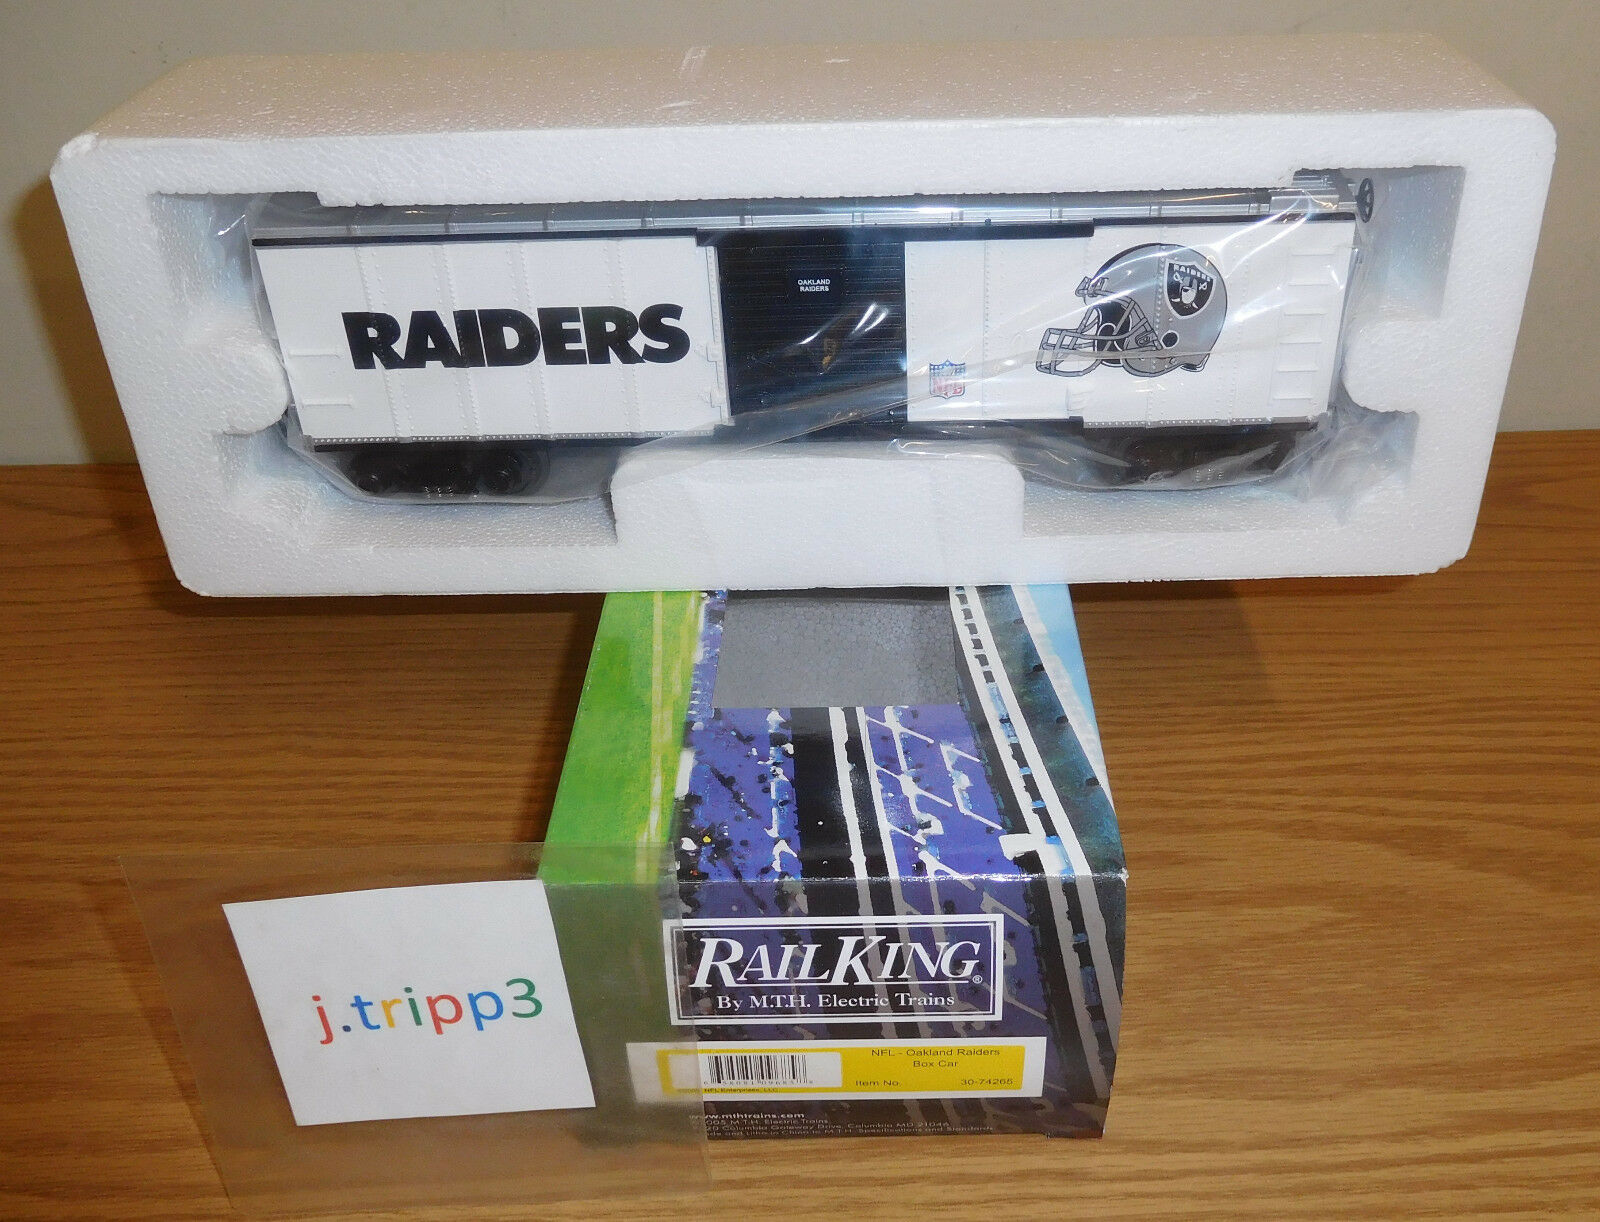 MTH RAILKING 30-74265 OAKLAND RAIDERS BOX CAR O GAUGE TOY TRAIN NFL FOOTBALL NIB